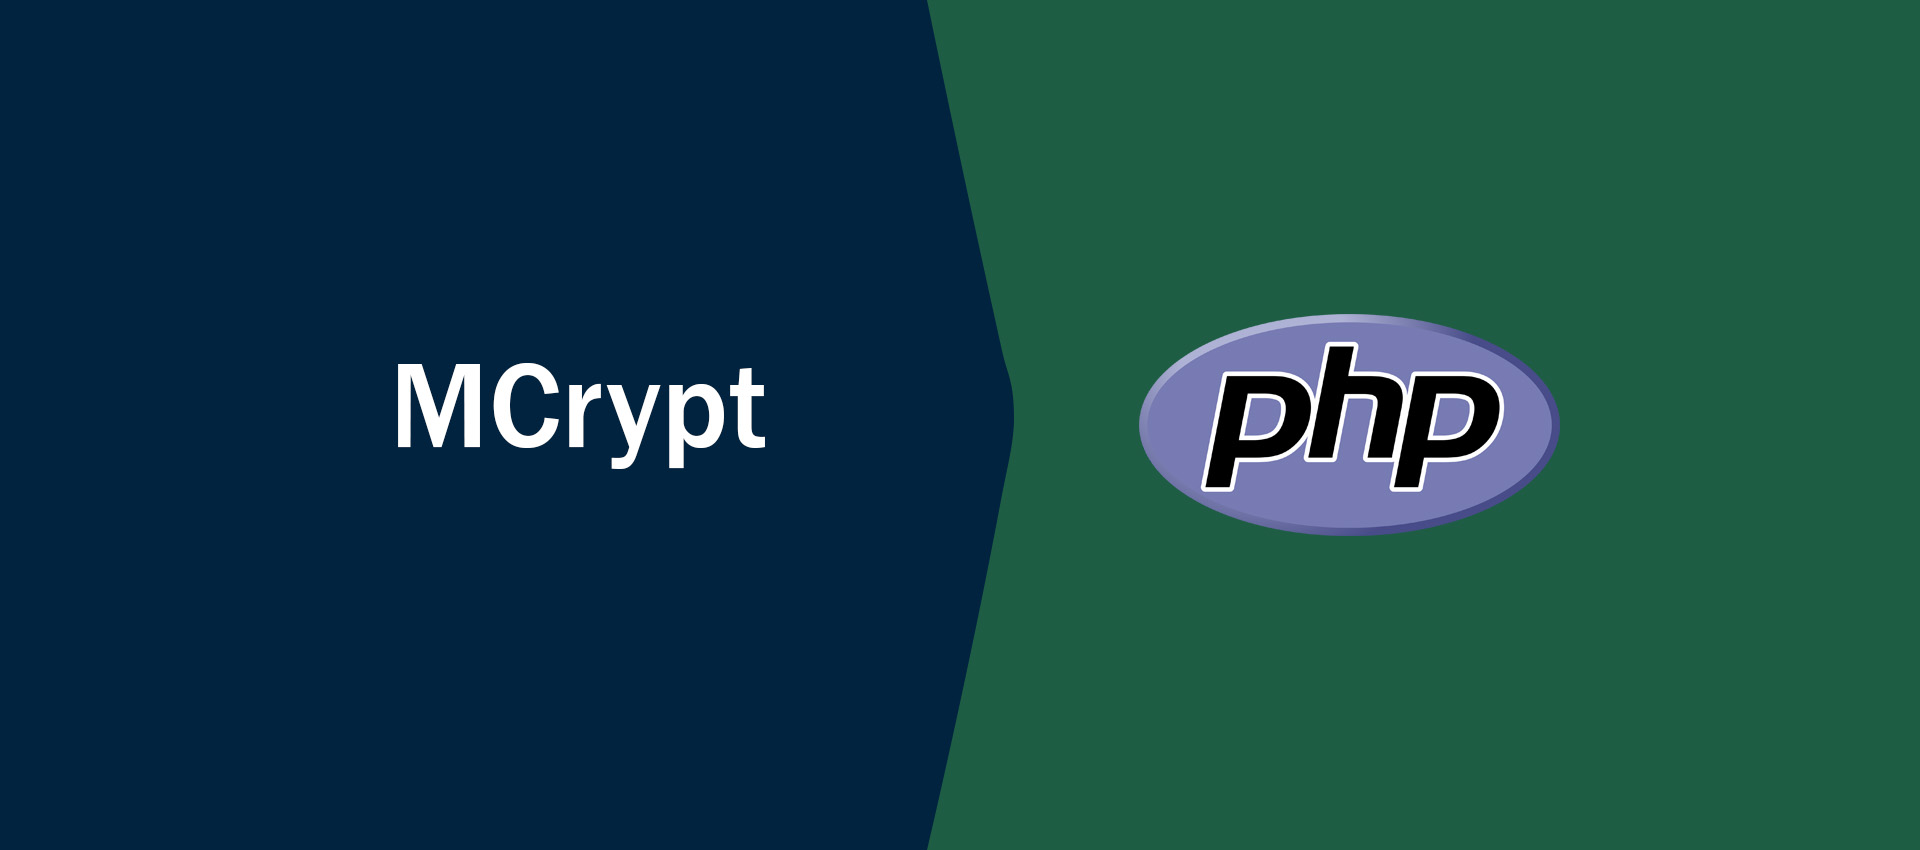 How To Install MCrypt For PHP 7 On Ubuntu 18.04 LTS